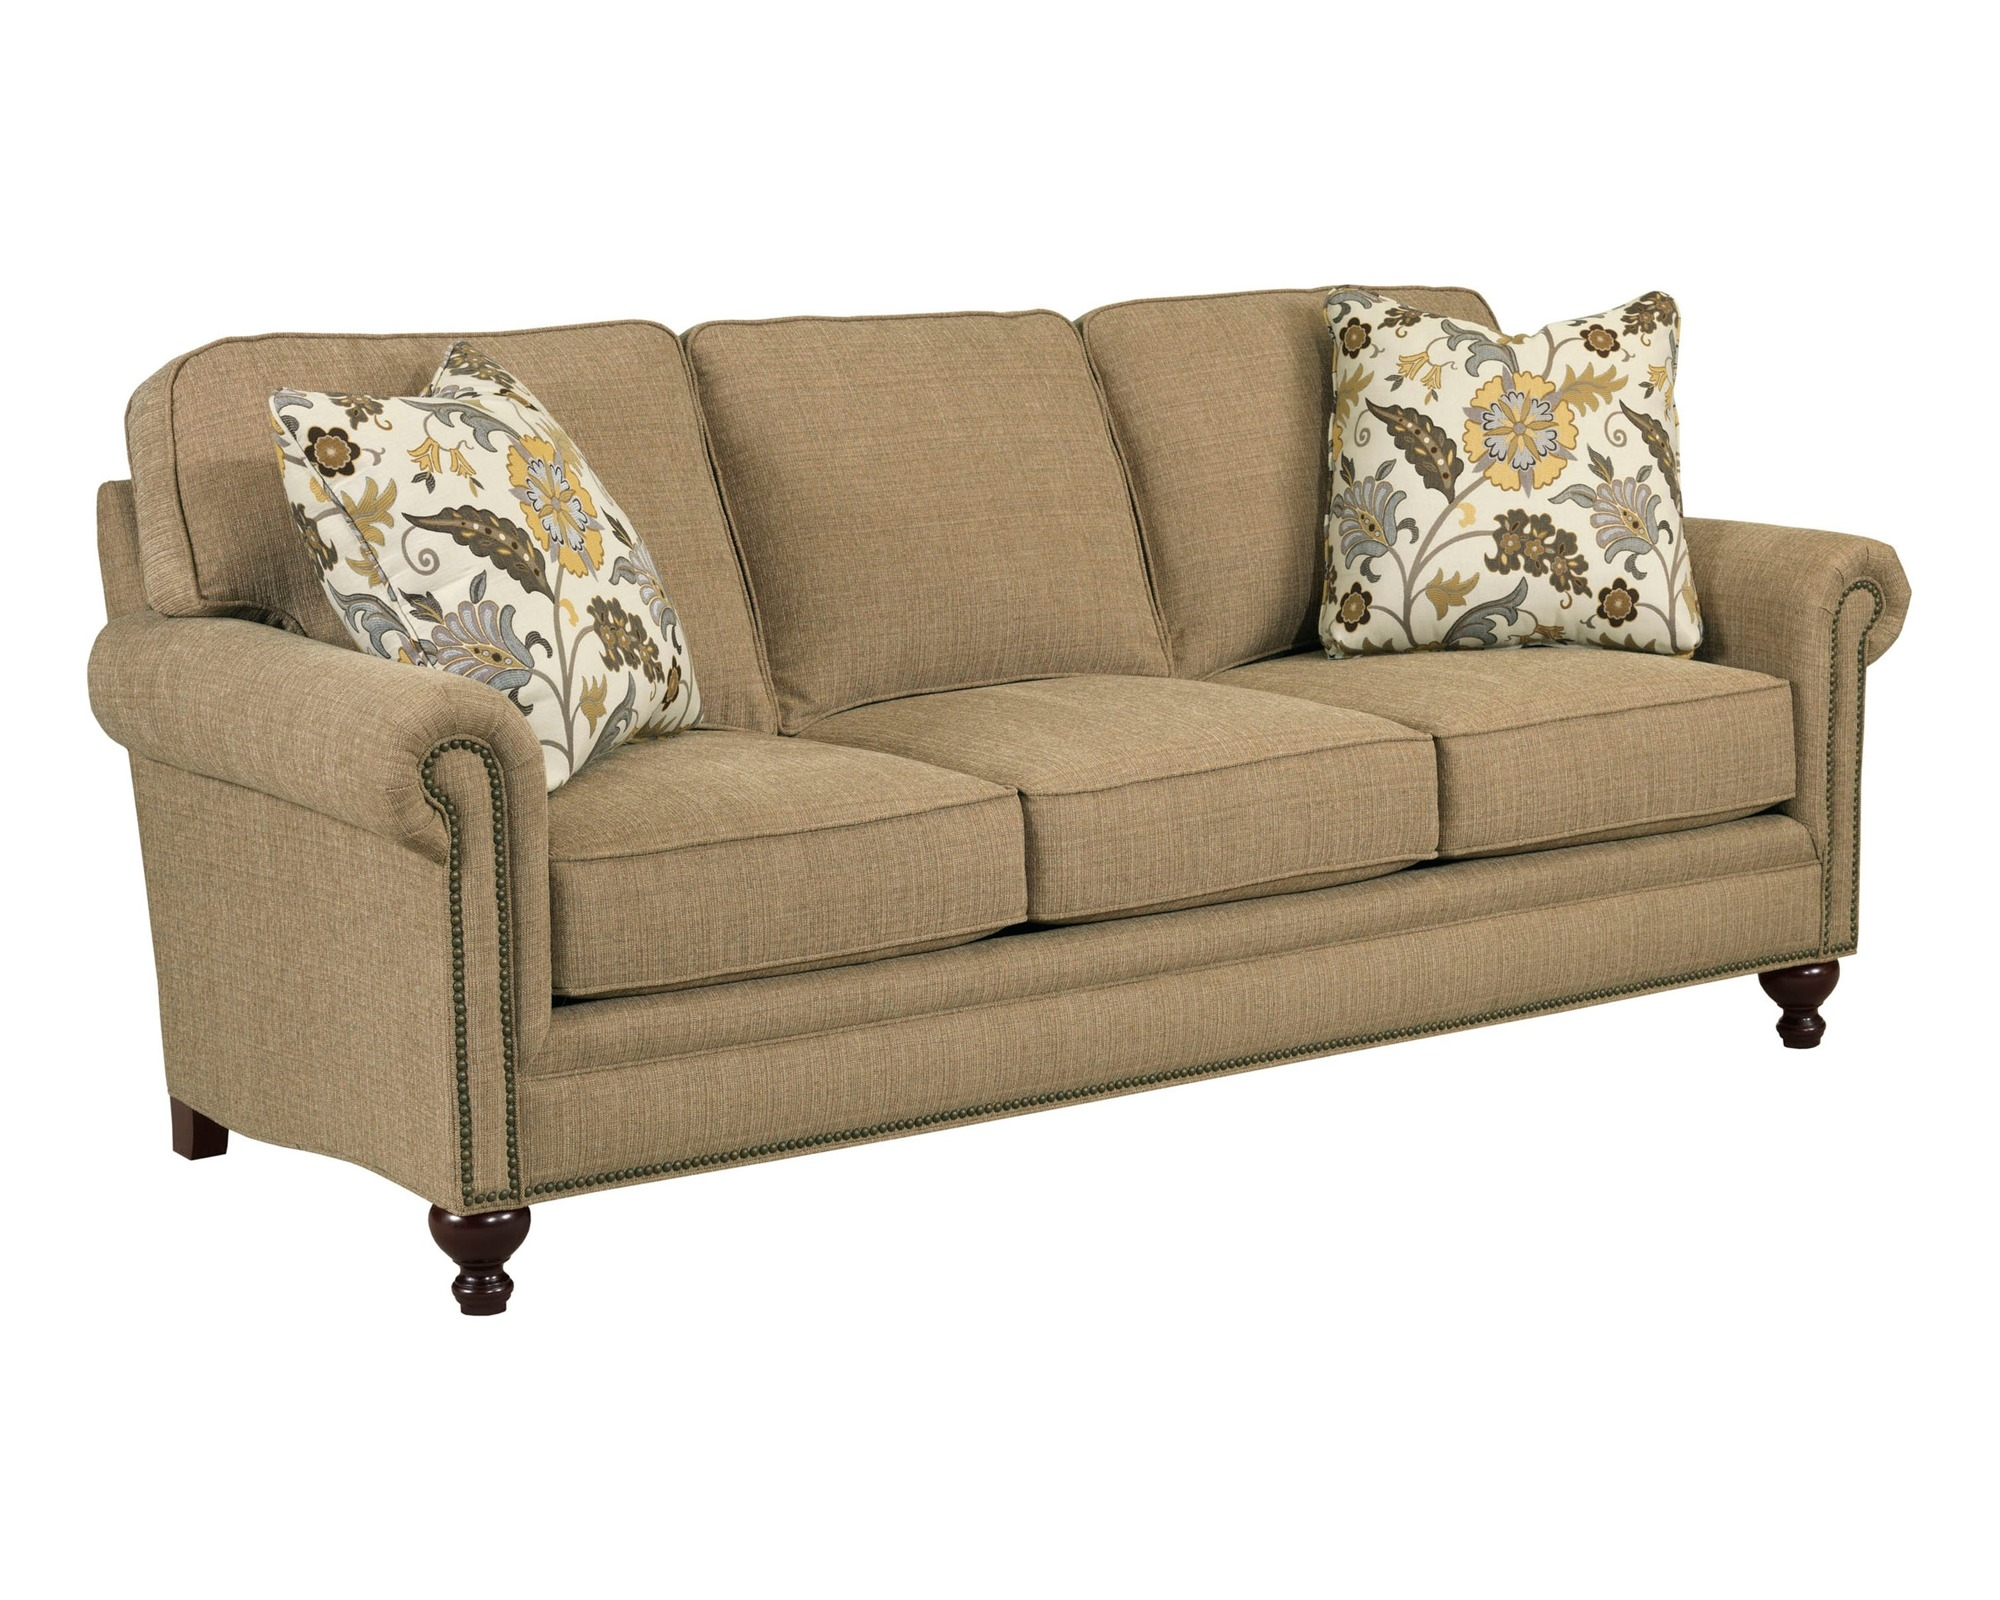 Harrison Sofabroyhill – Home Gallery Stores Regarding Broyhill Harrison Sofas (Image 19 of 20)